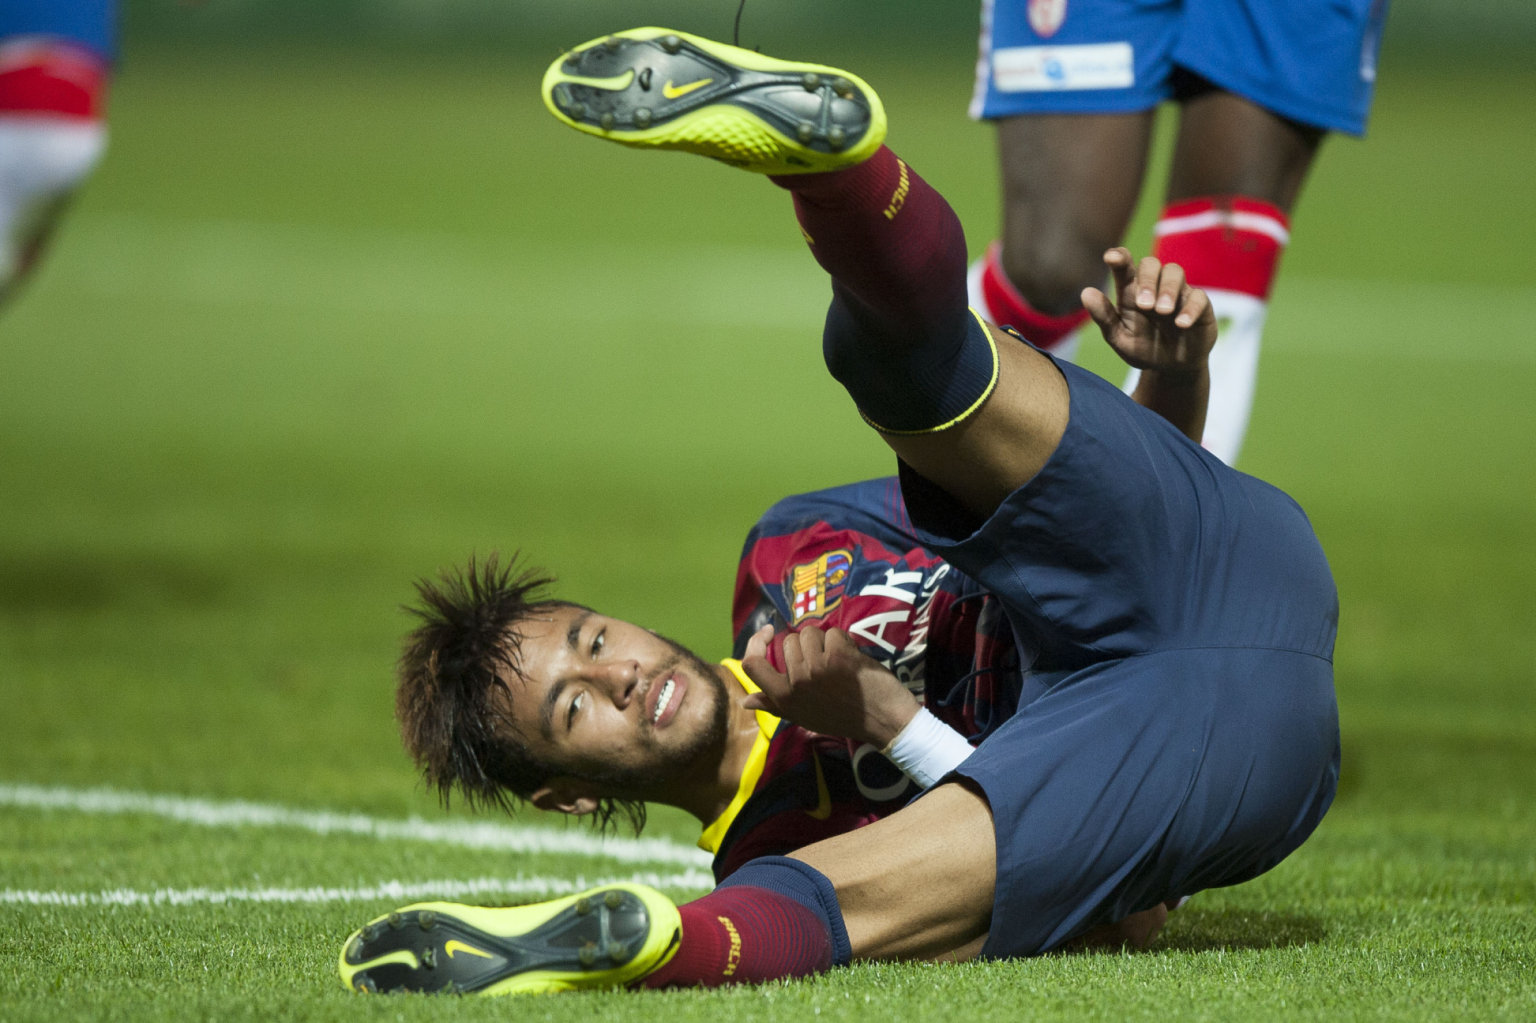 Neymar rolling on the ground